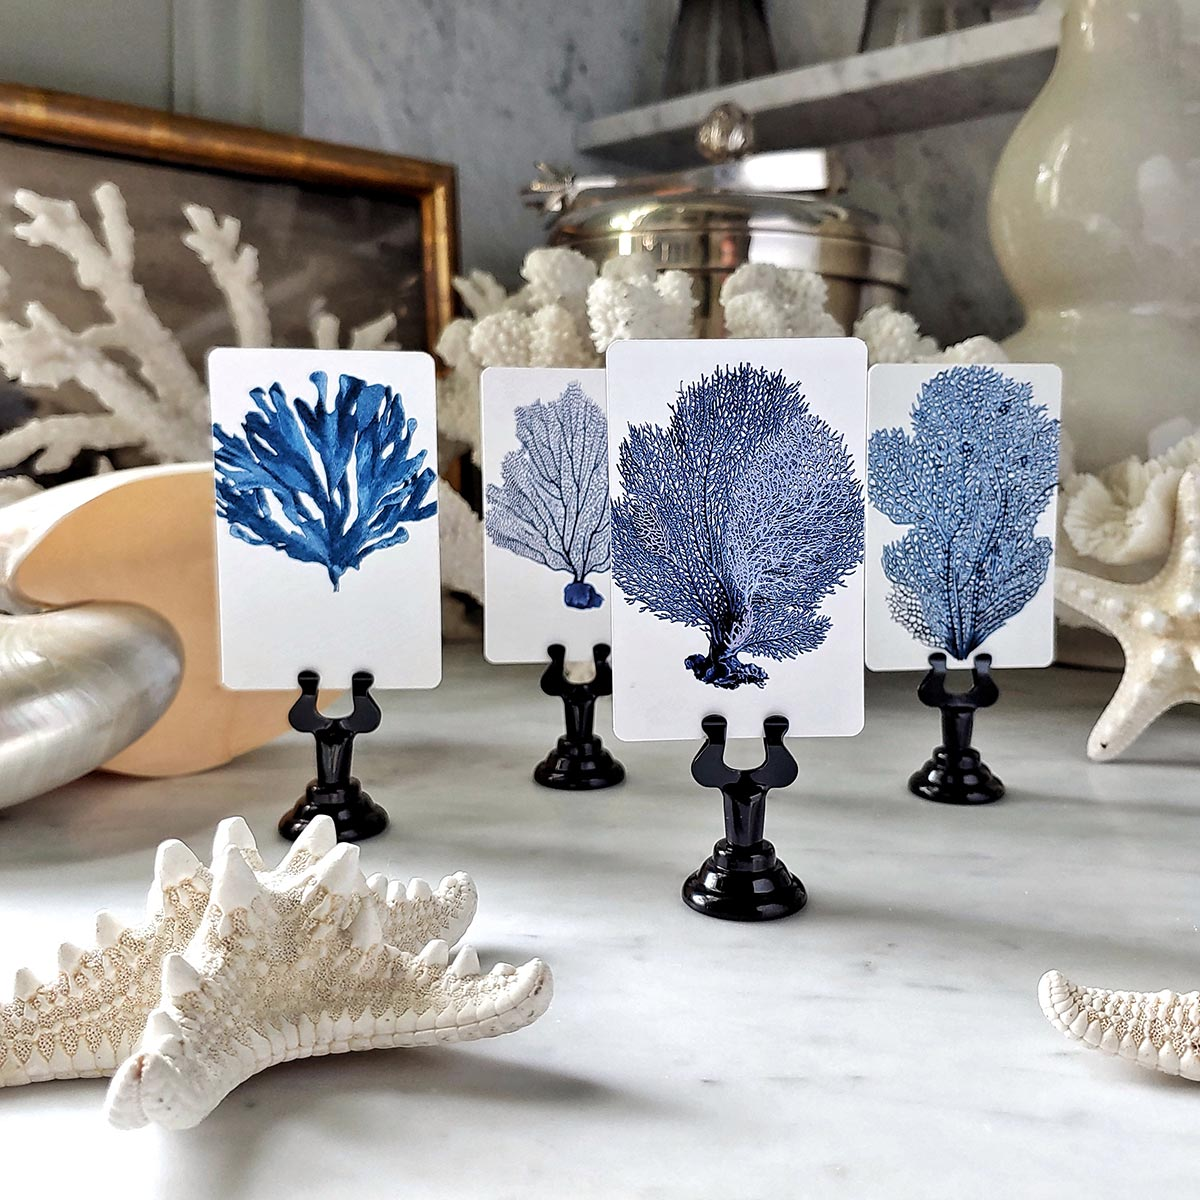 The Punctilious Mr. P's 'Blue Seaweed & Coral' place cards